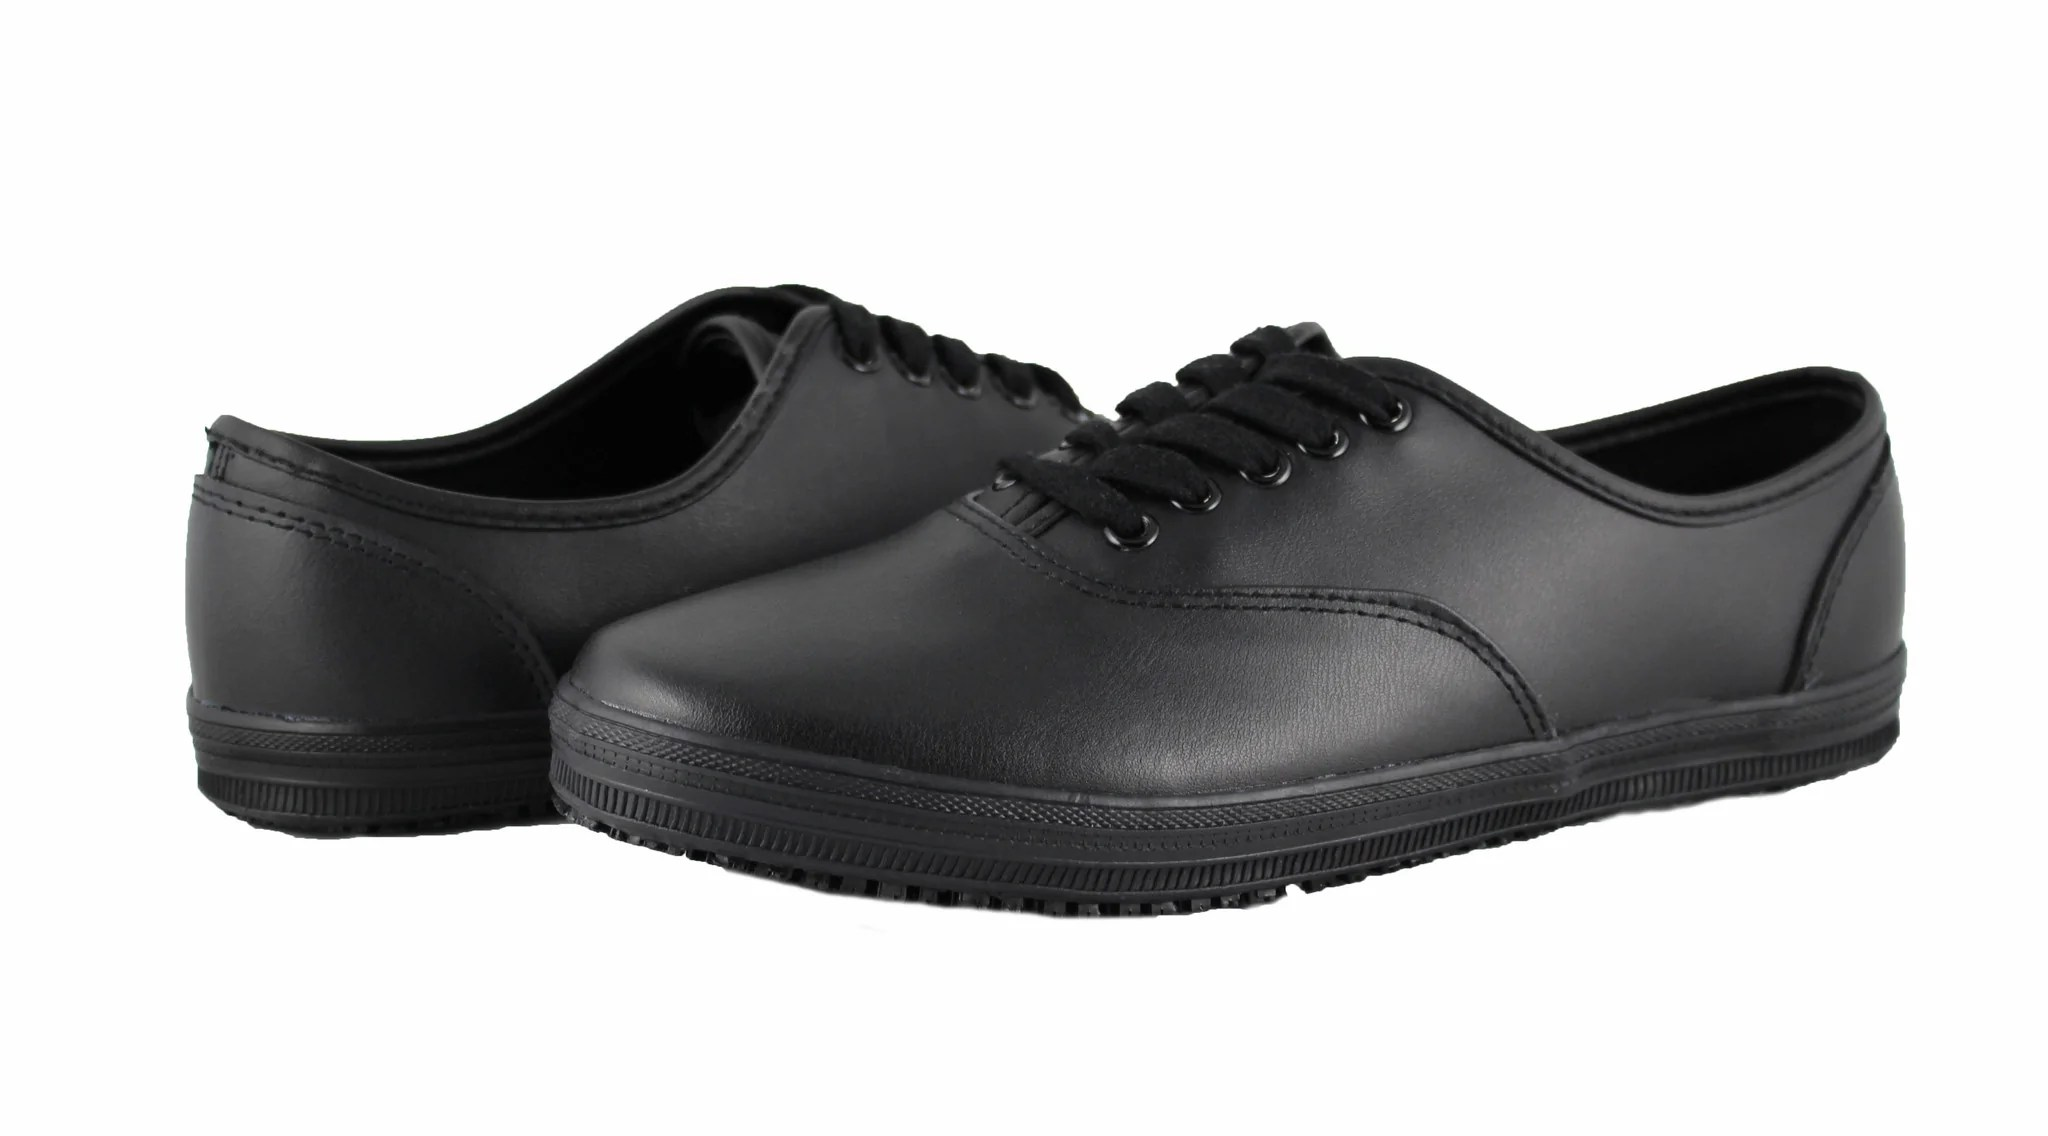 Slip And Oil Resistant Work Shoes